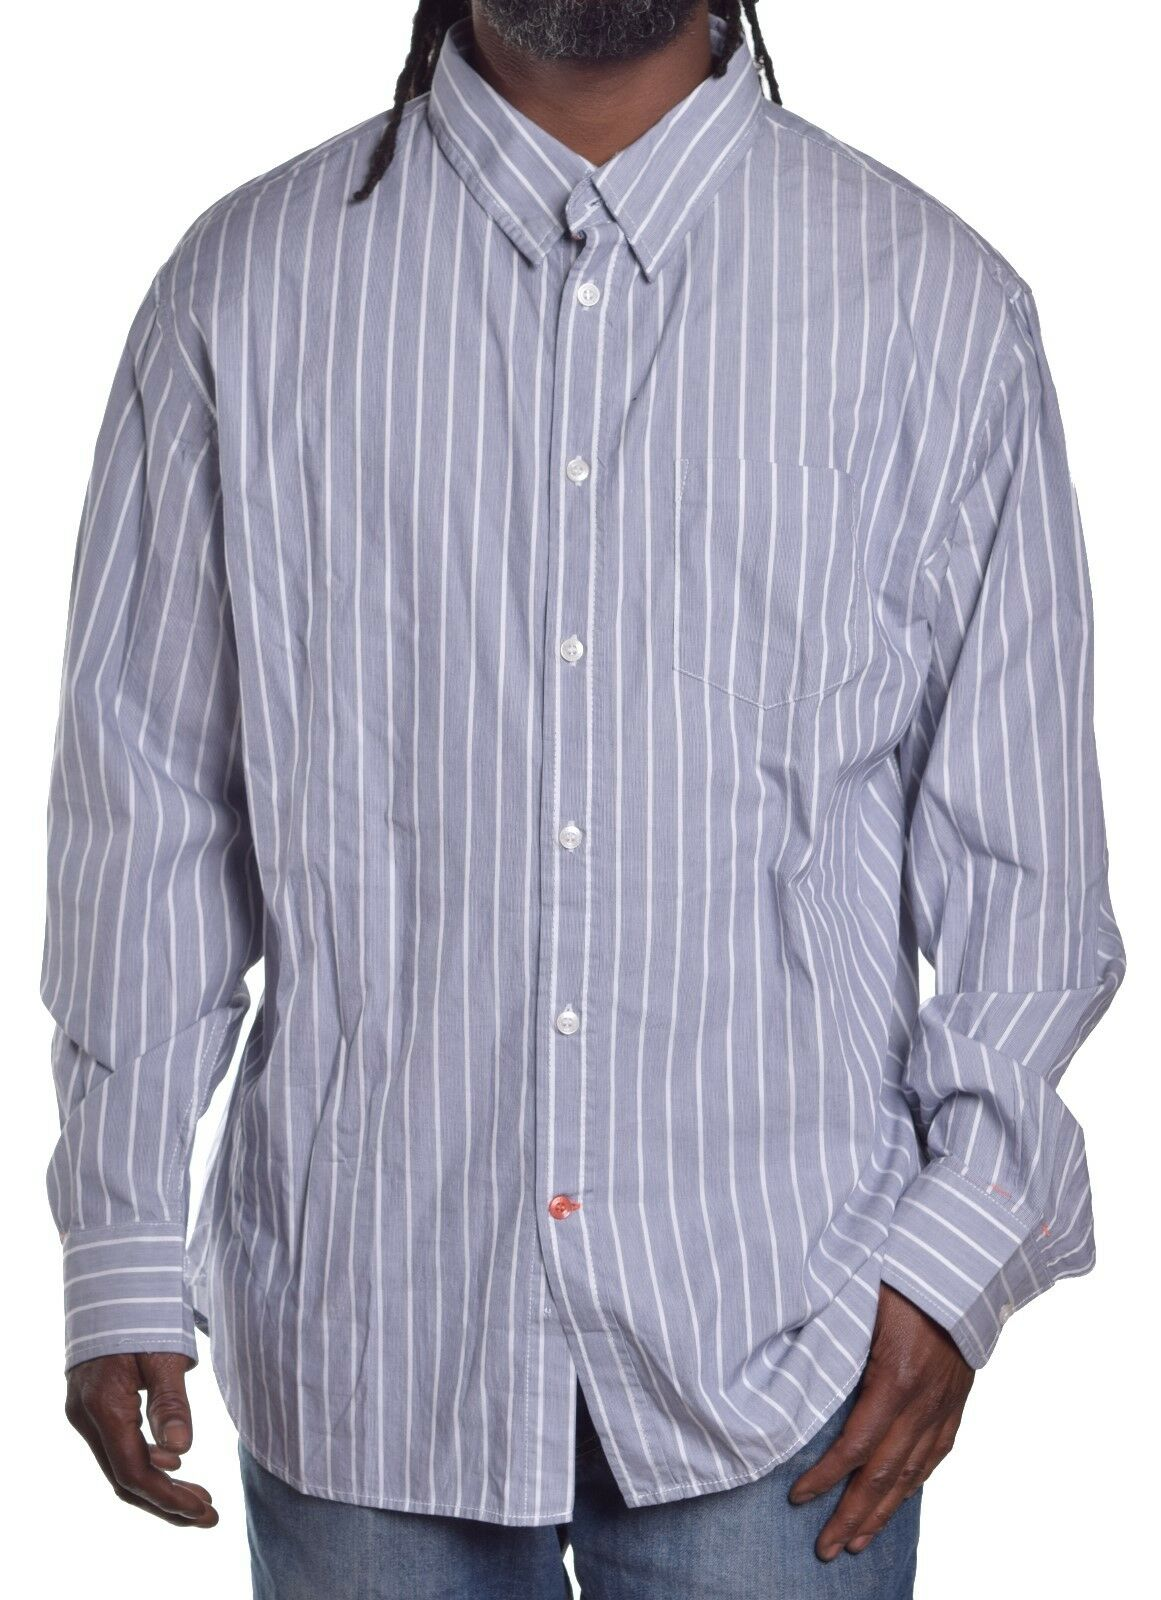 French Connection Men's  Casual Stripe Button Up Shirt Size 2XL